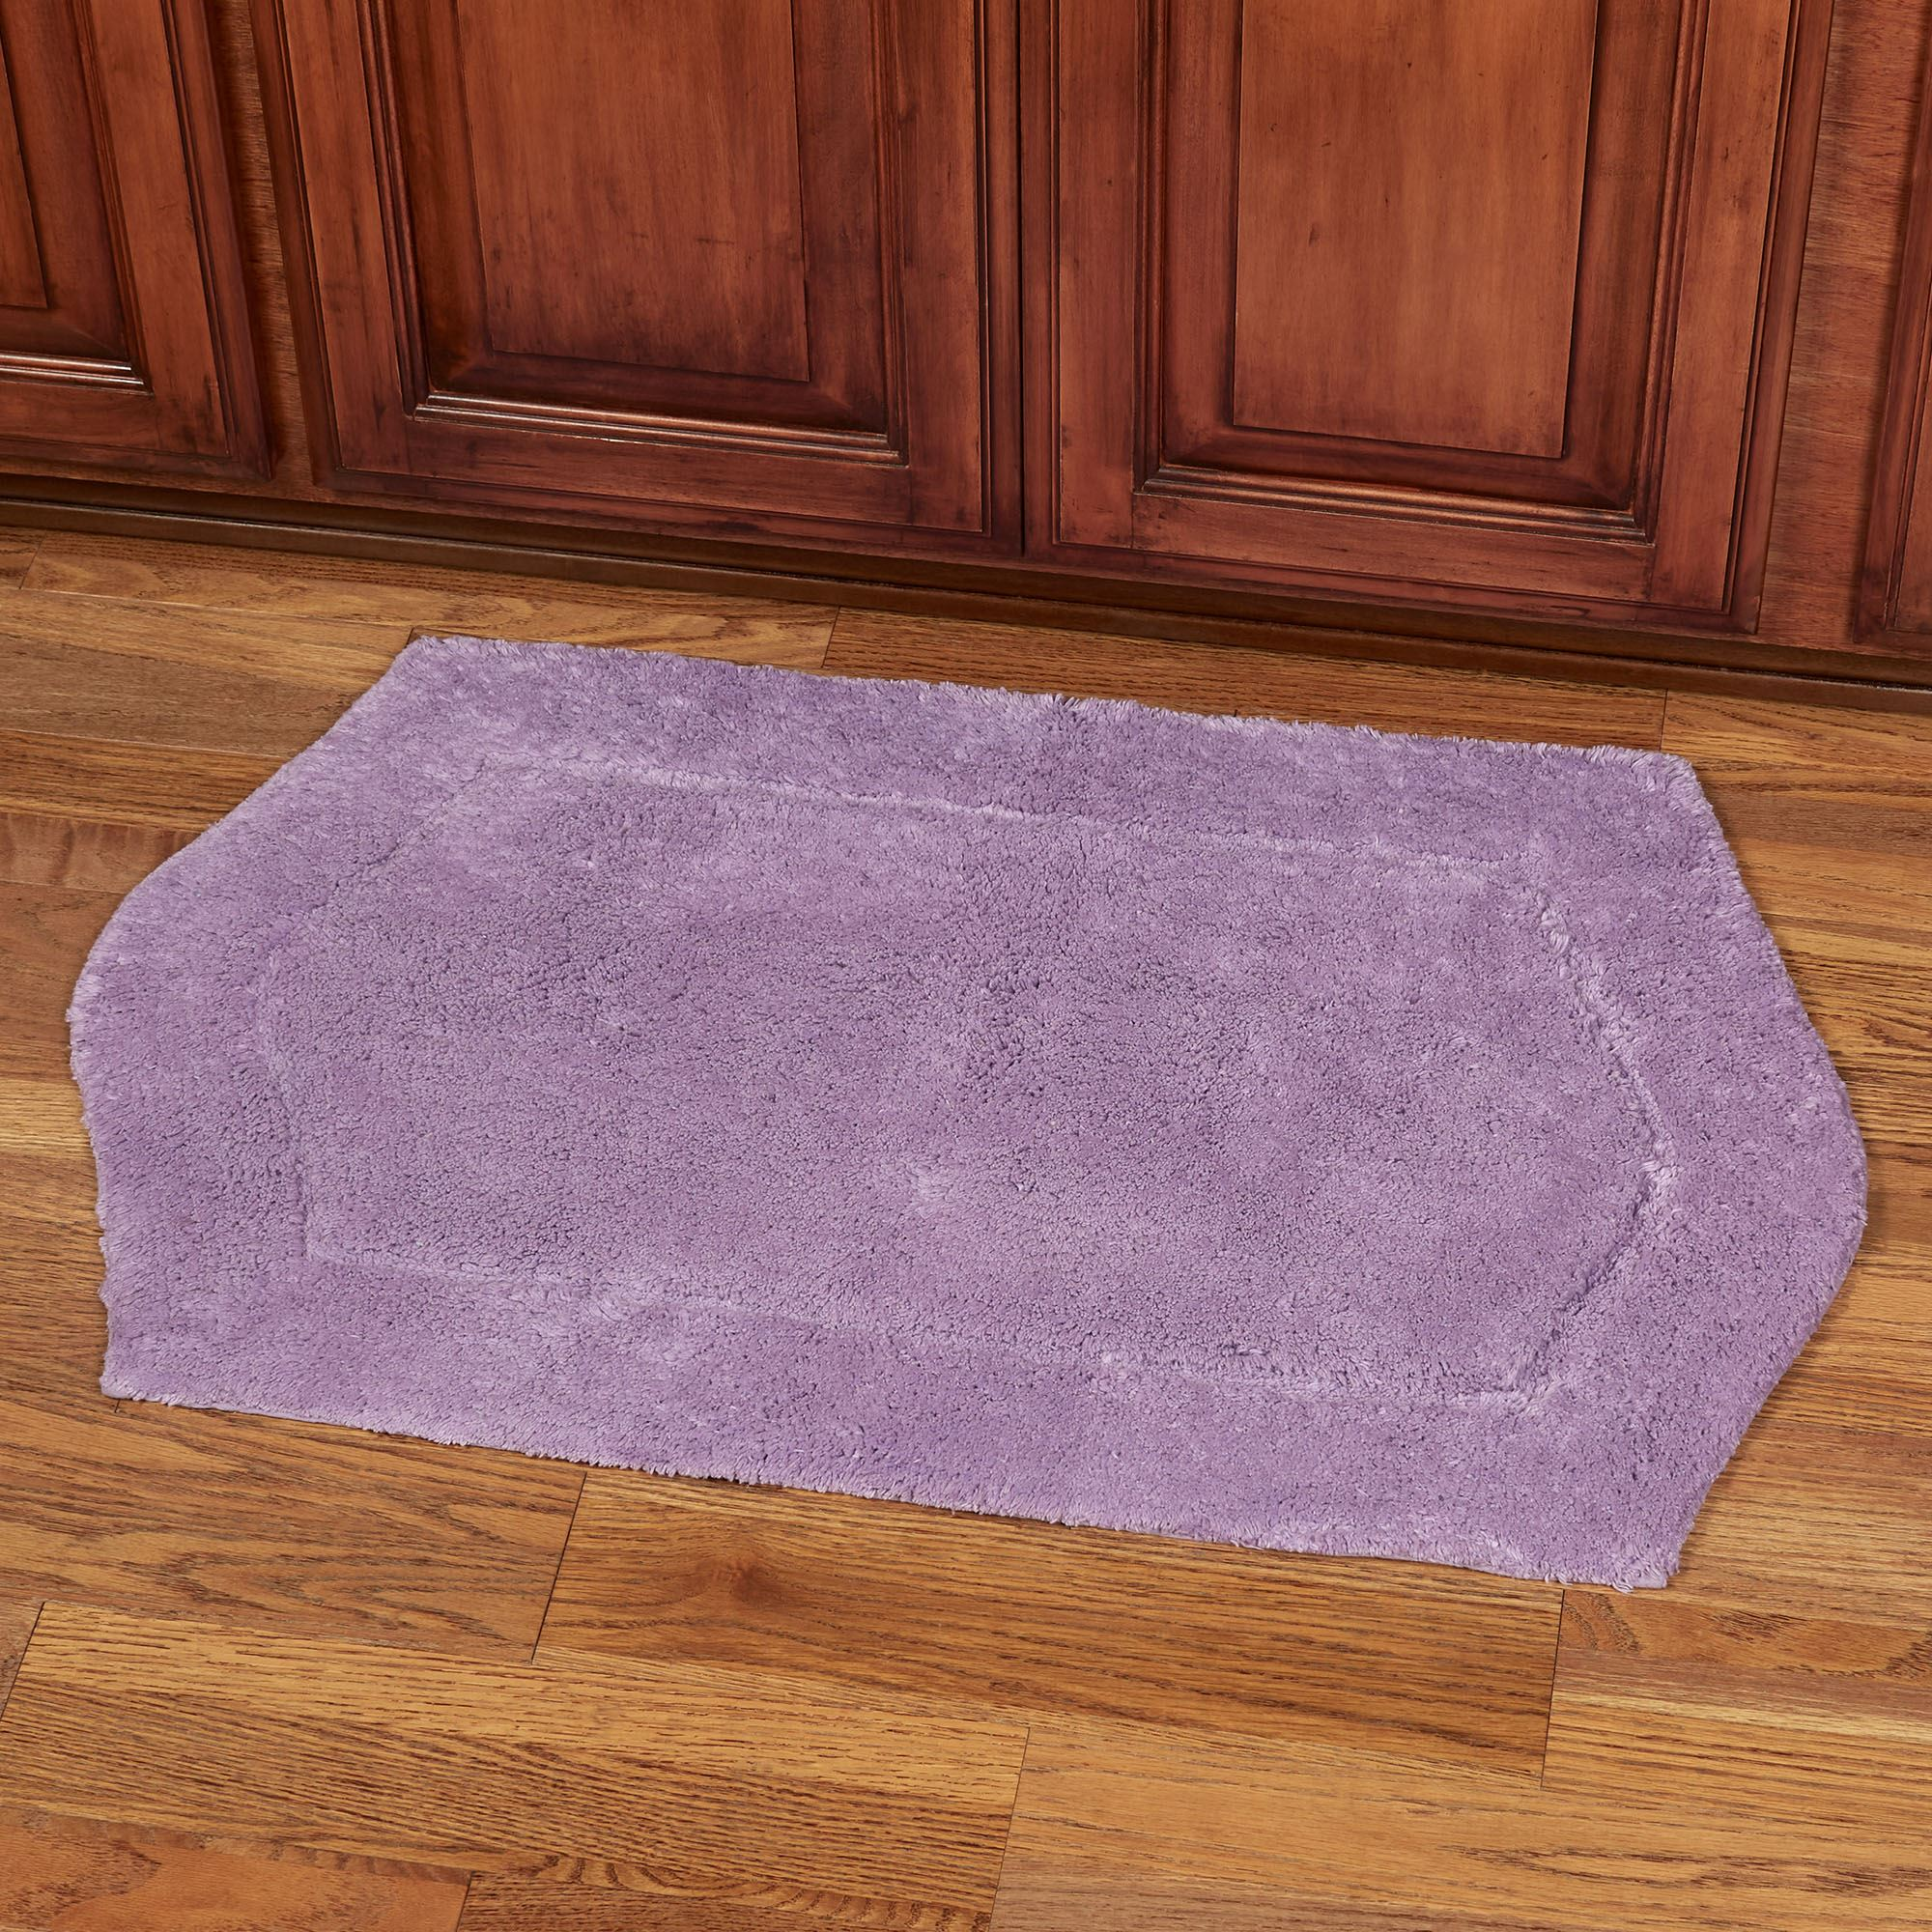 Waterford Soft Tufted Cotton Bath Rugs